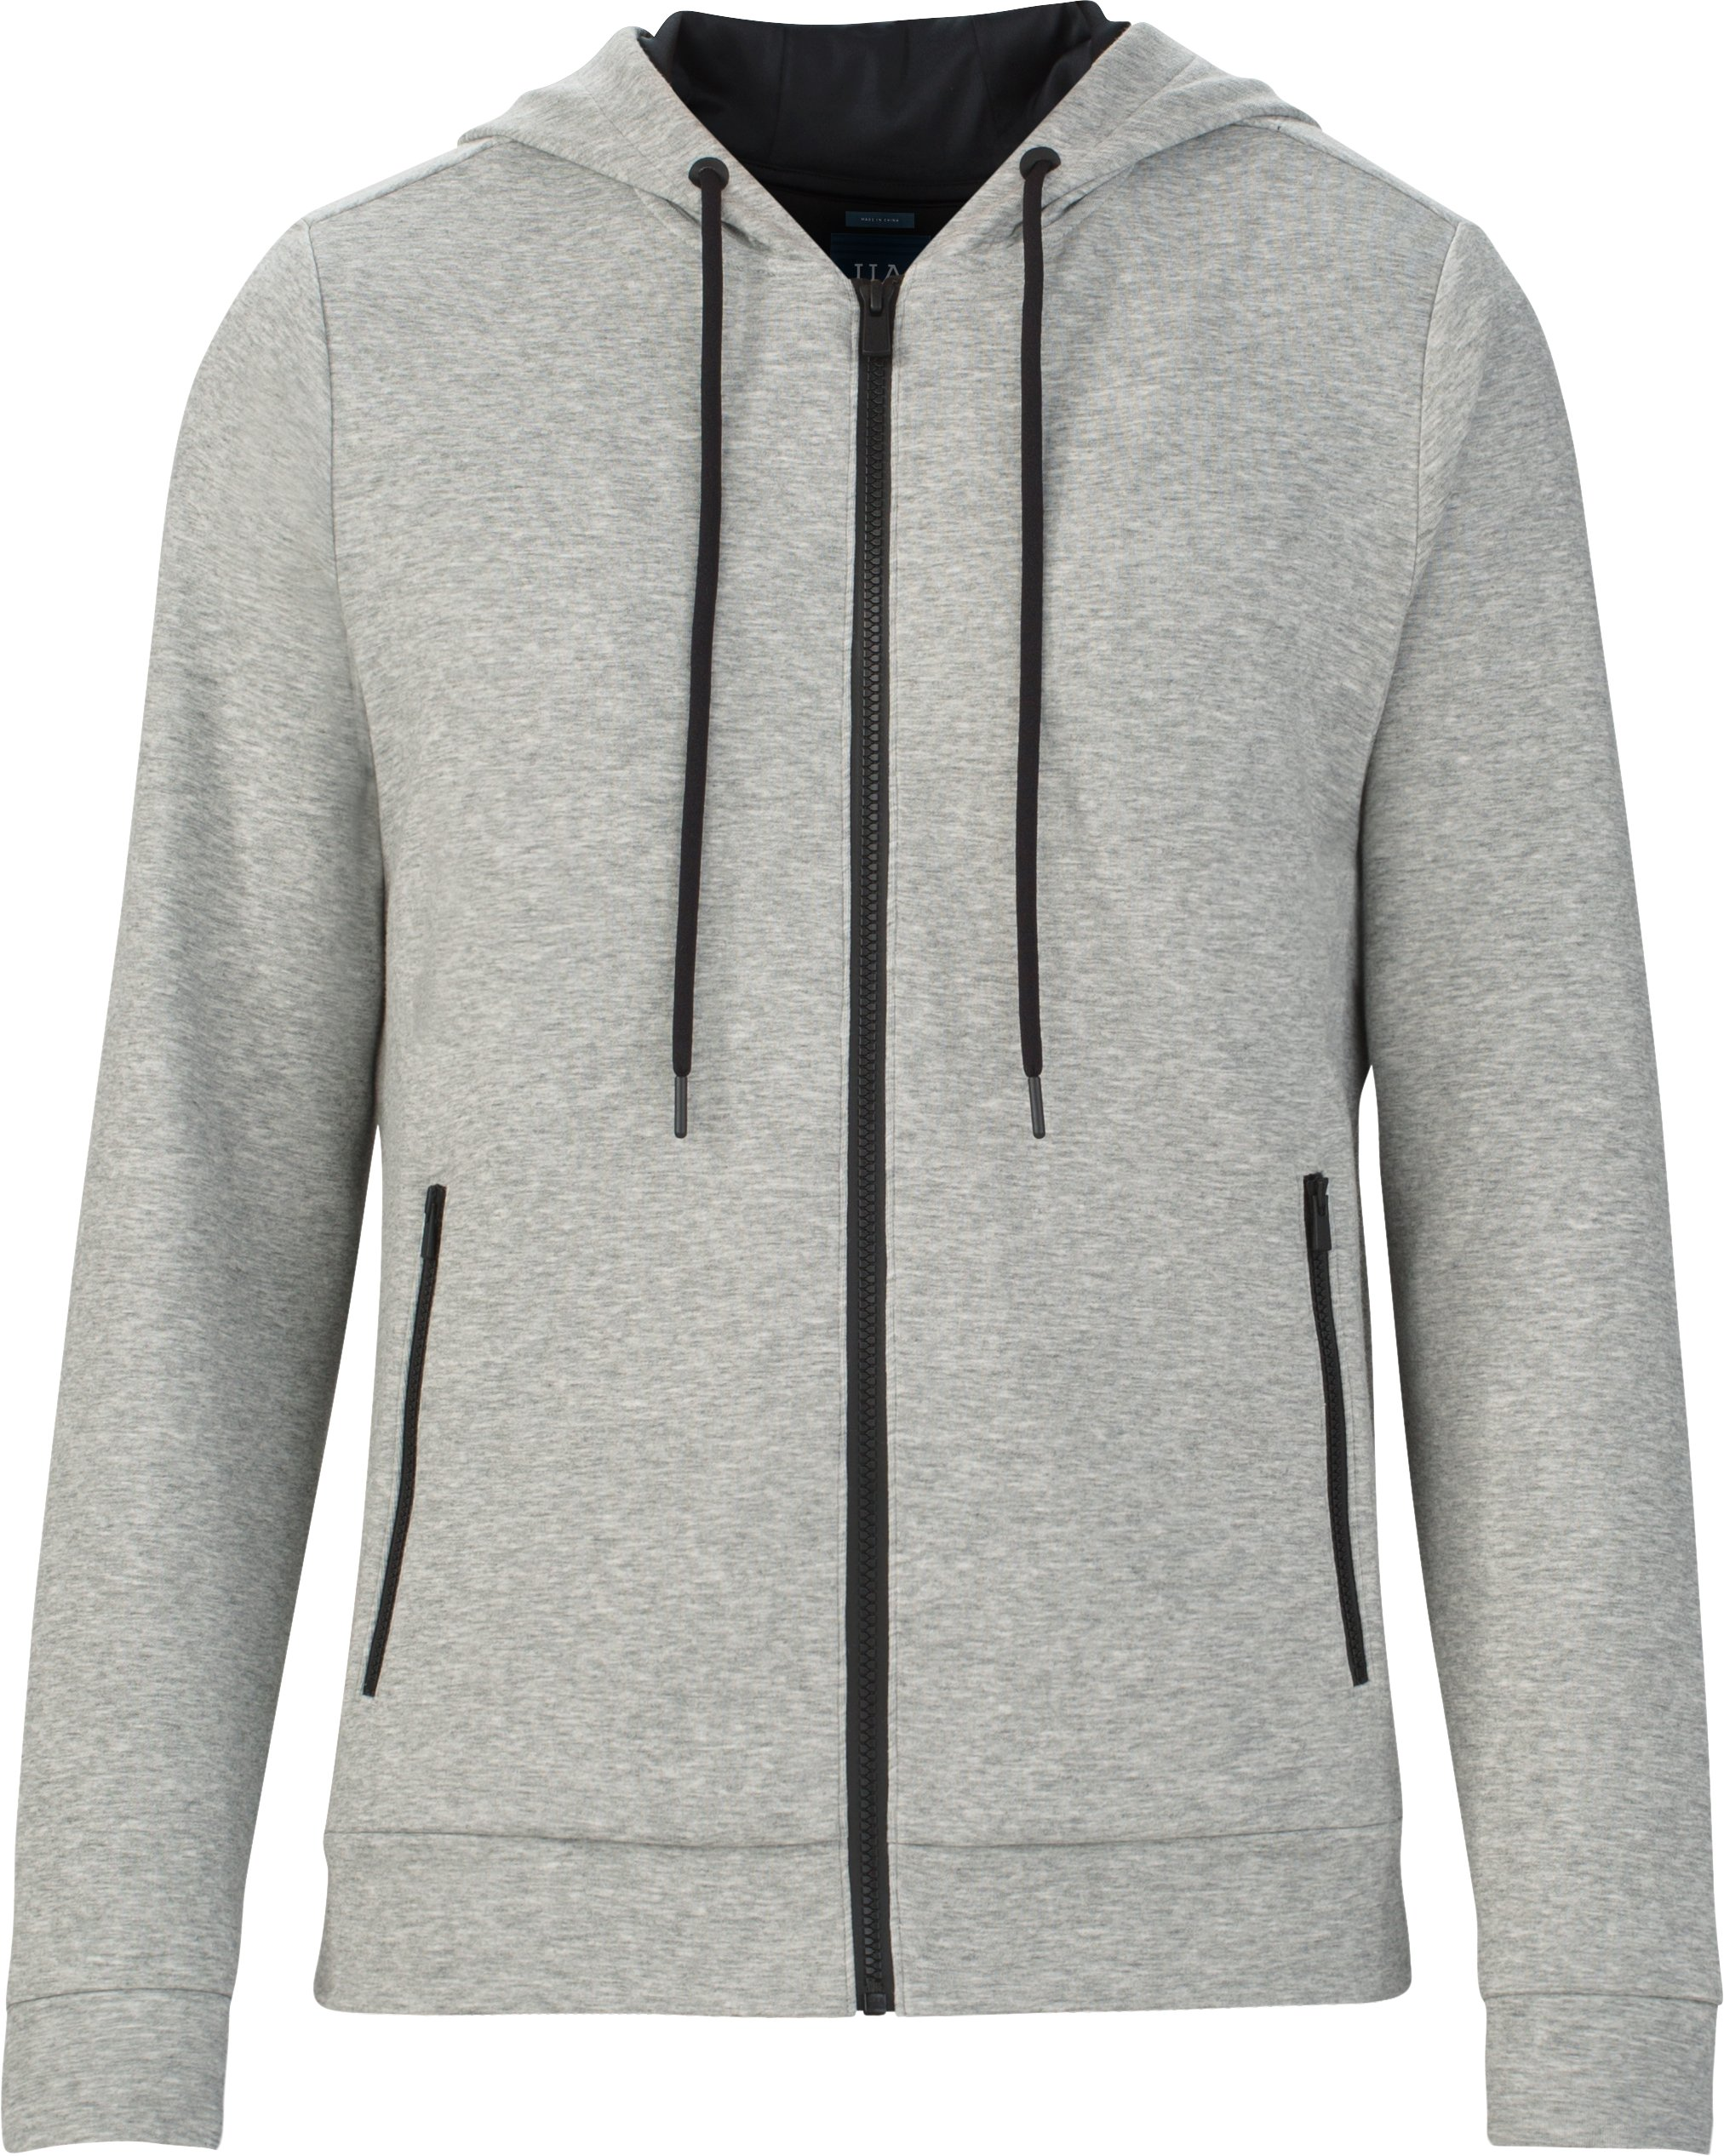 Men's UAS Tailgate Full Zip Hoodie, LIGHT HEATHER GRAY, undefined